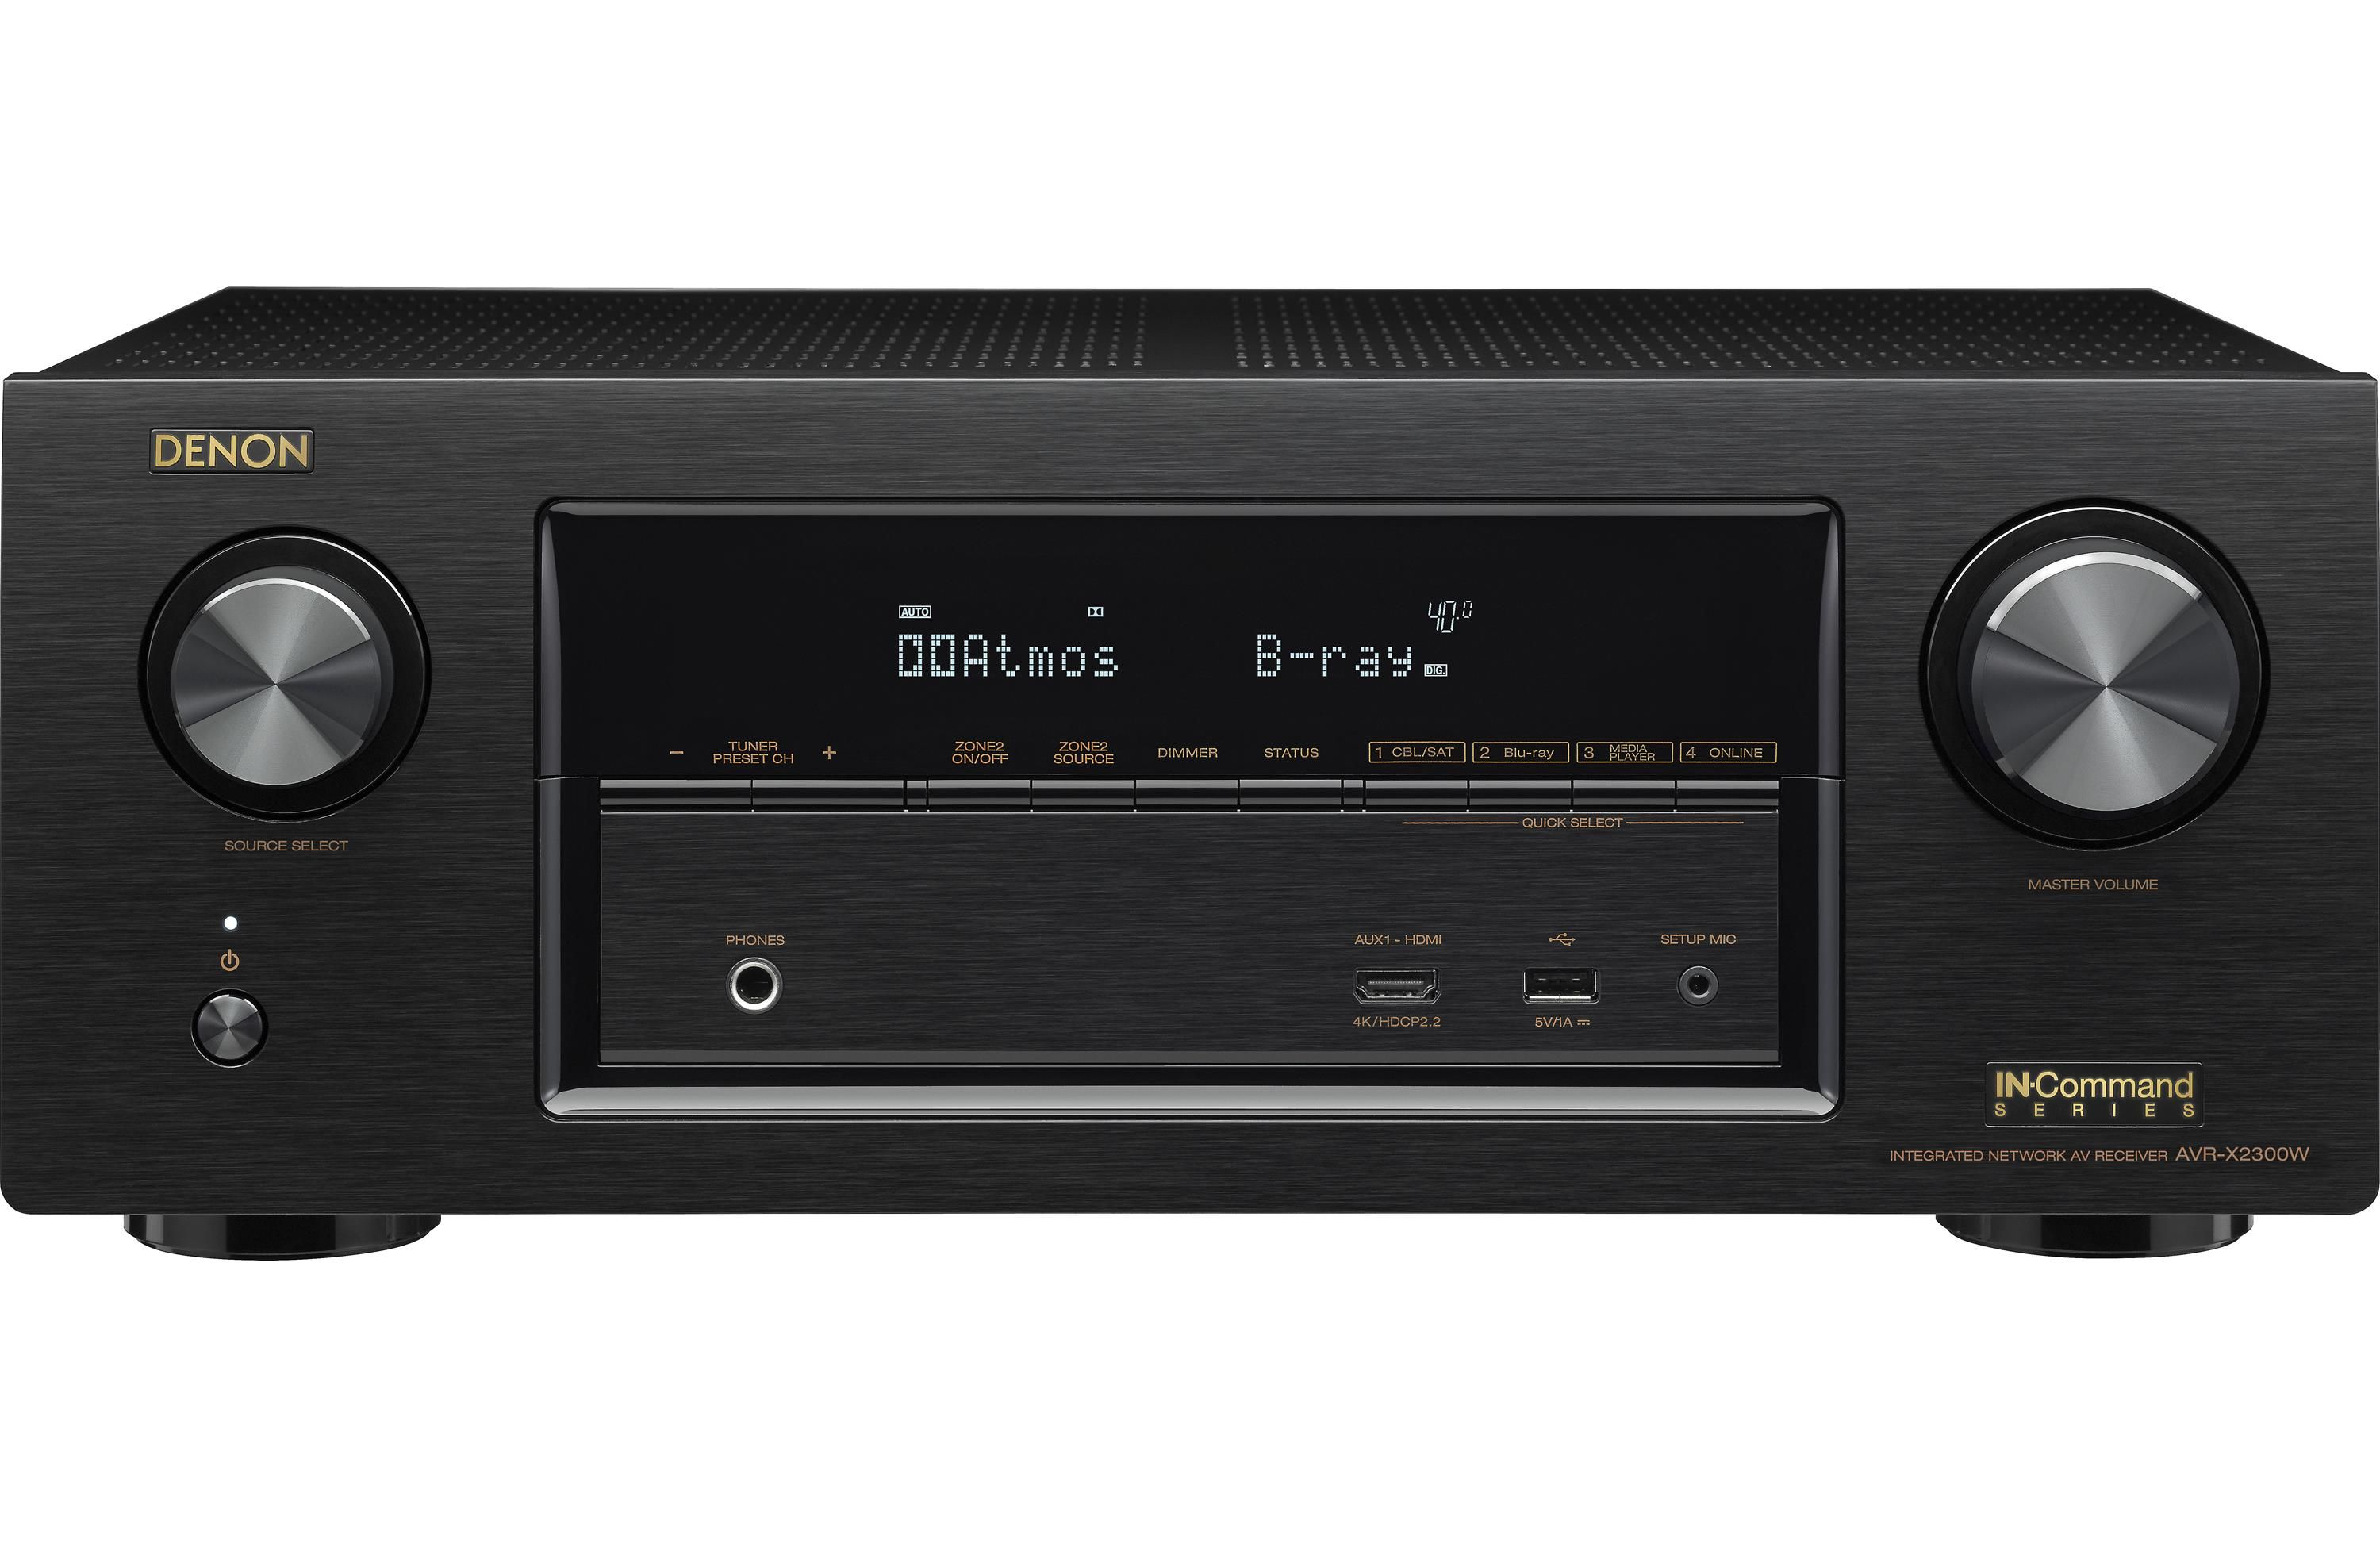 Denon AVR-X2300W 7 2-channel home theater receiver with Wi